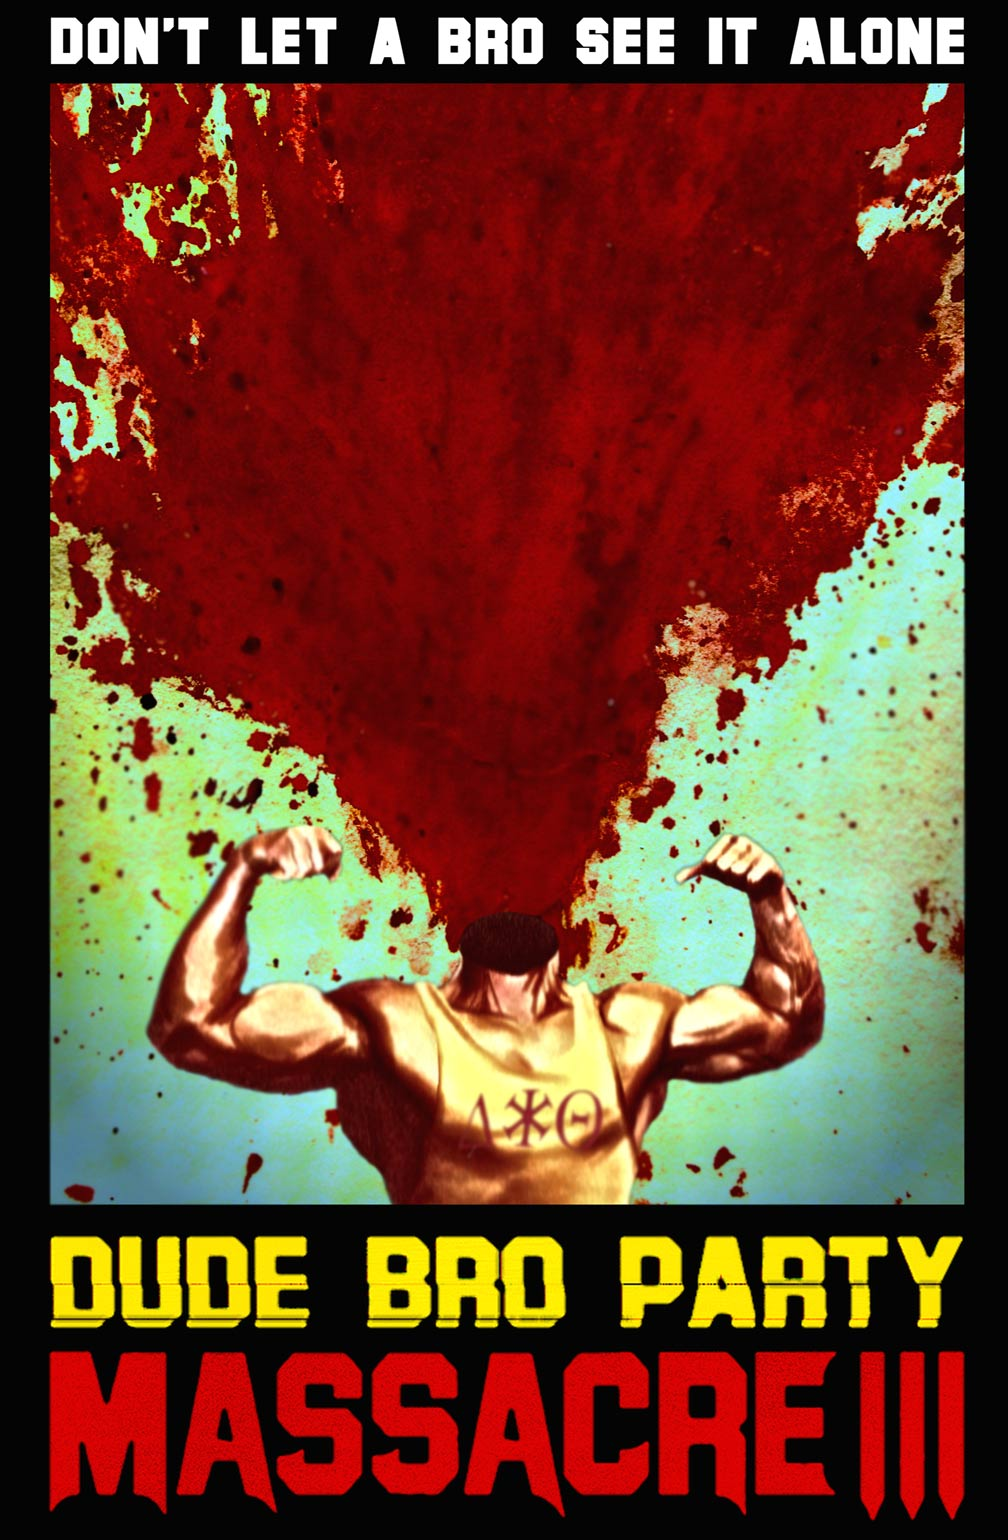 Dude Bro Party Massacre III Poster #1